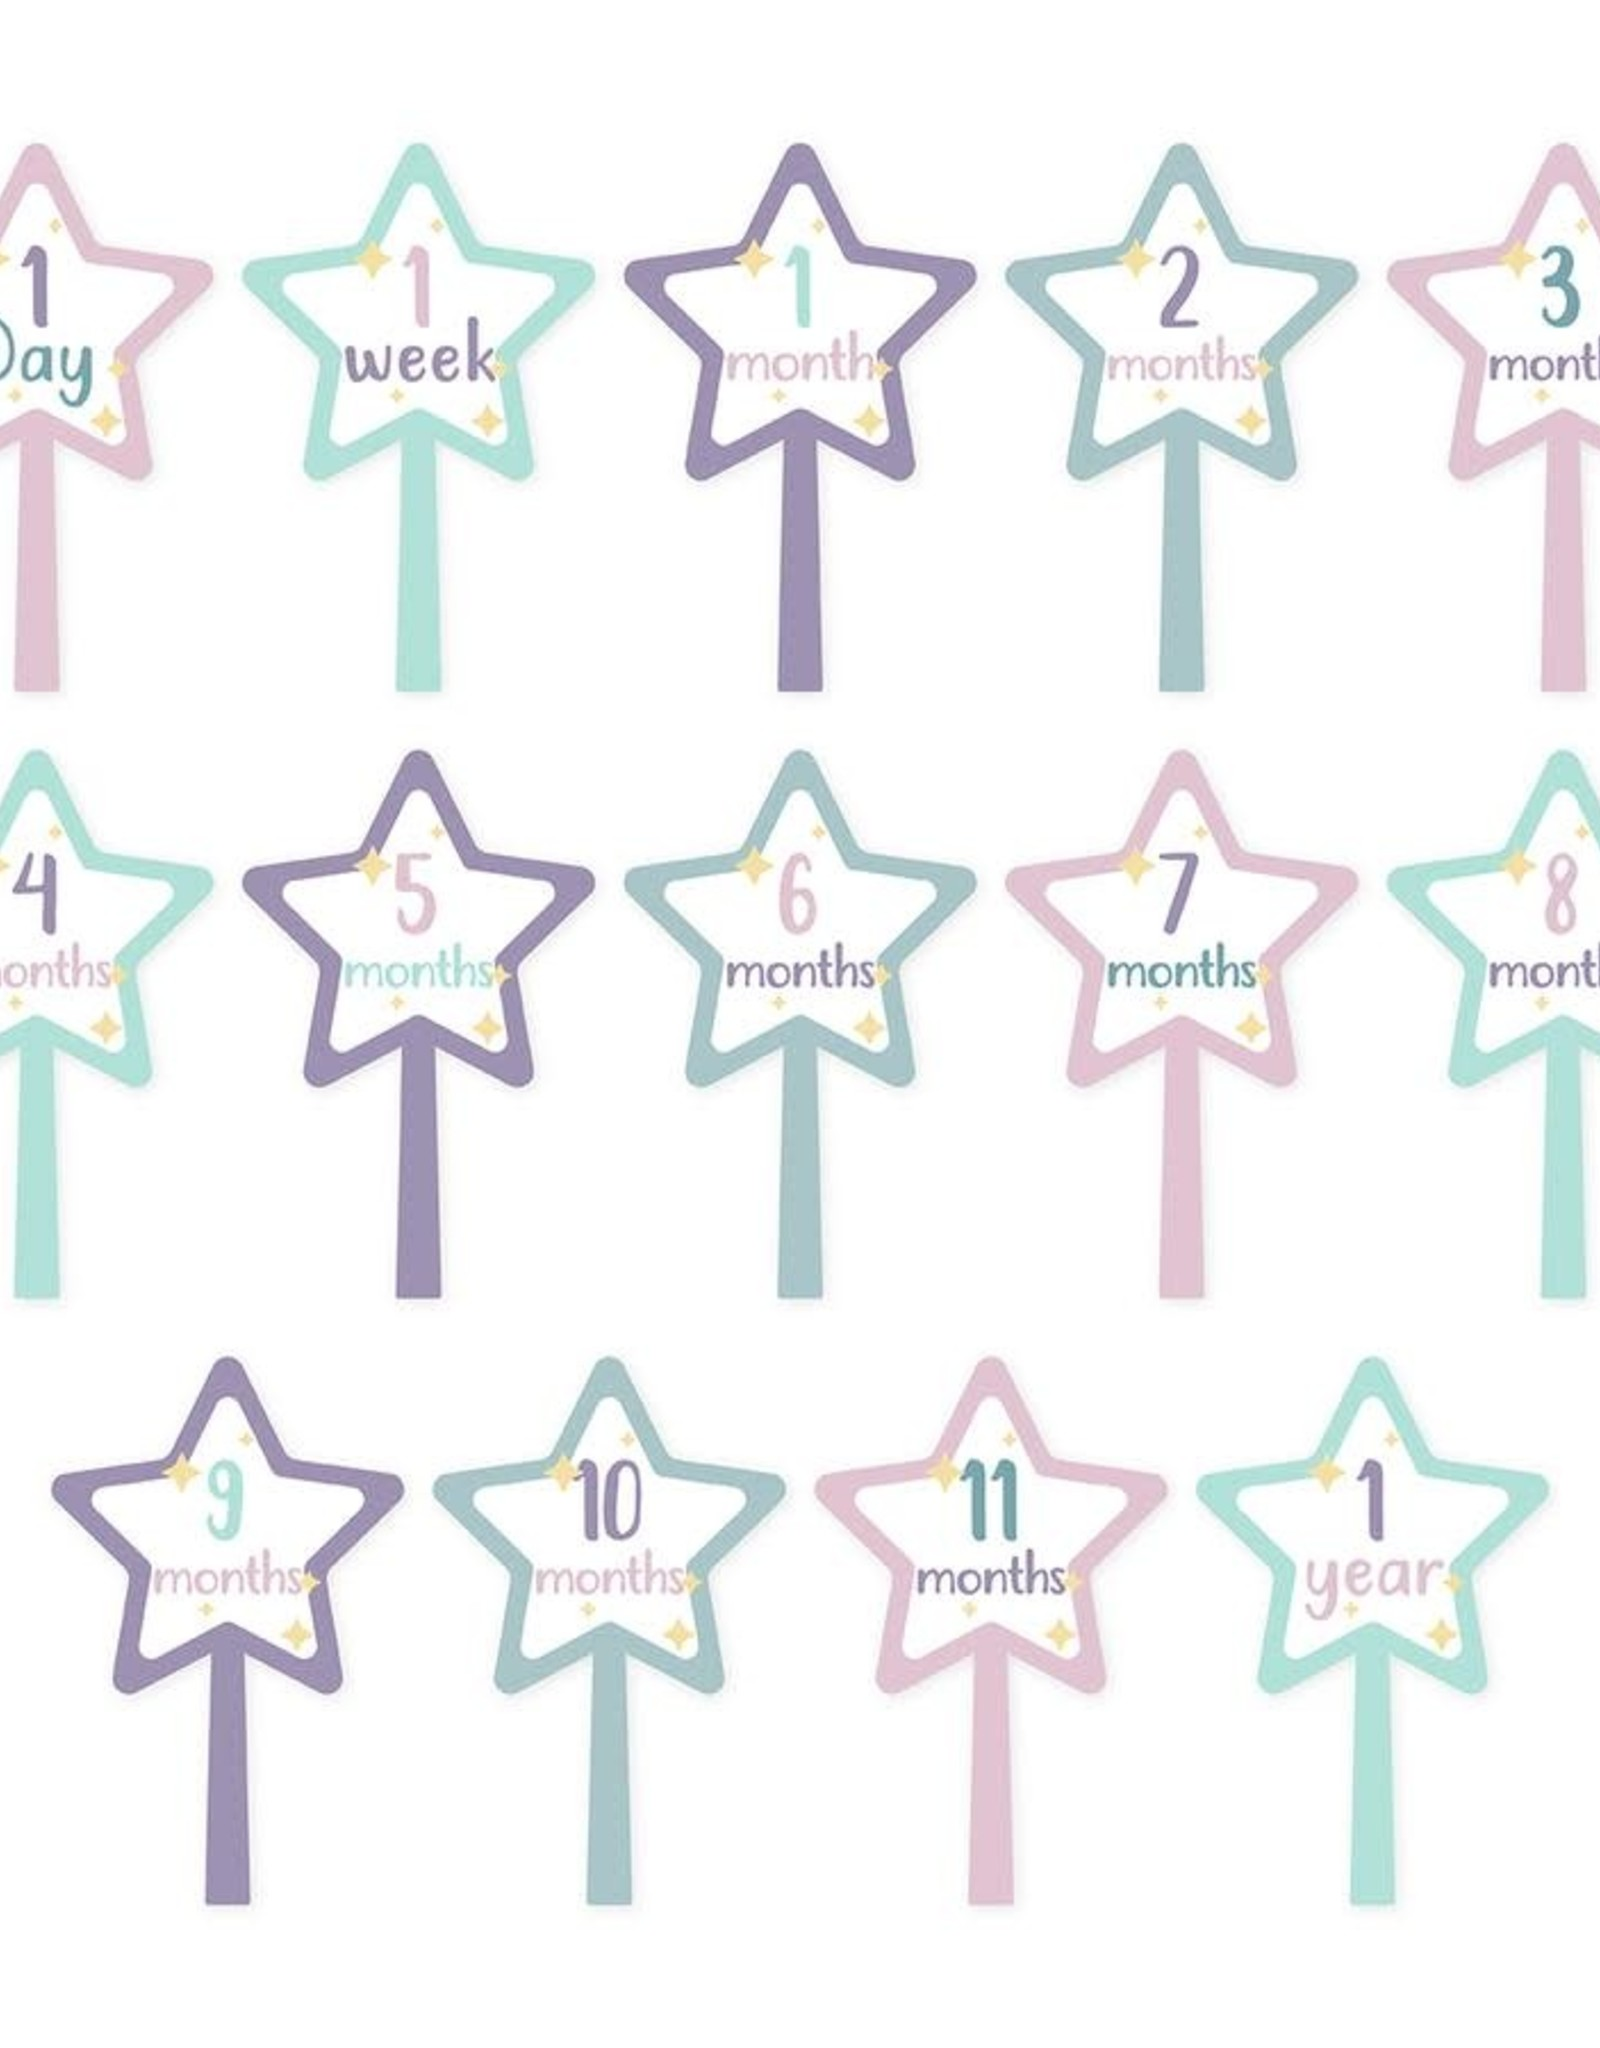 Lulujo Lulujo Baby's First Year Milestone Stickers - Something Magical